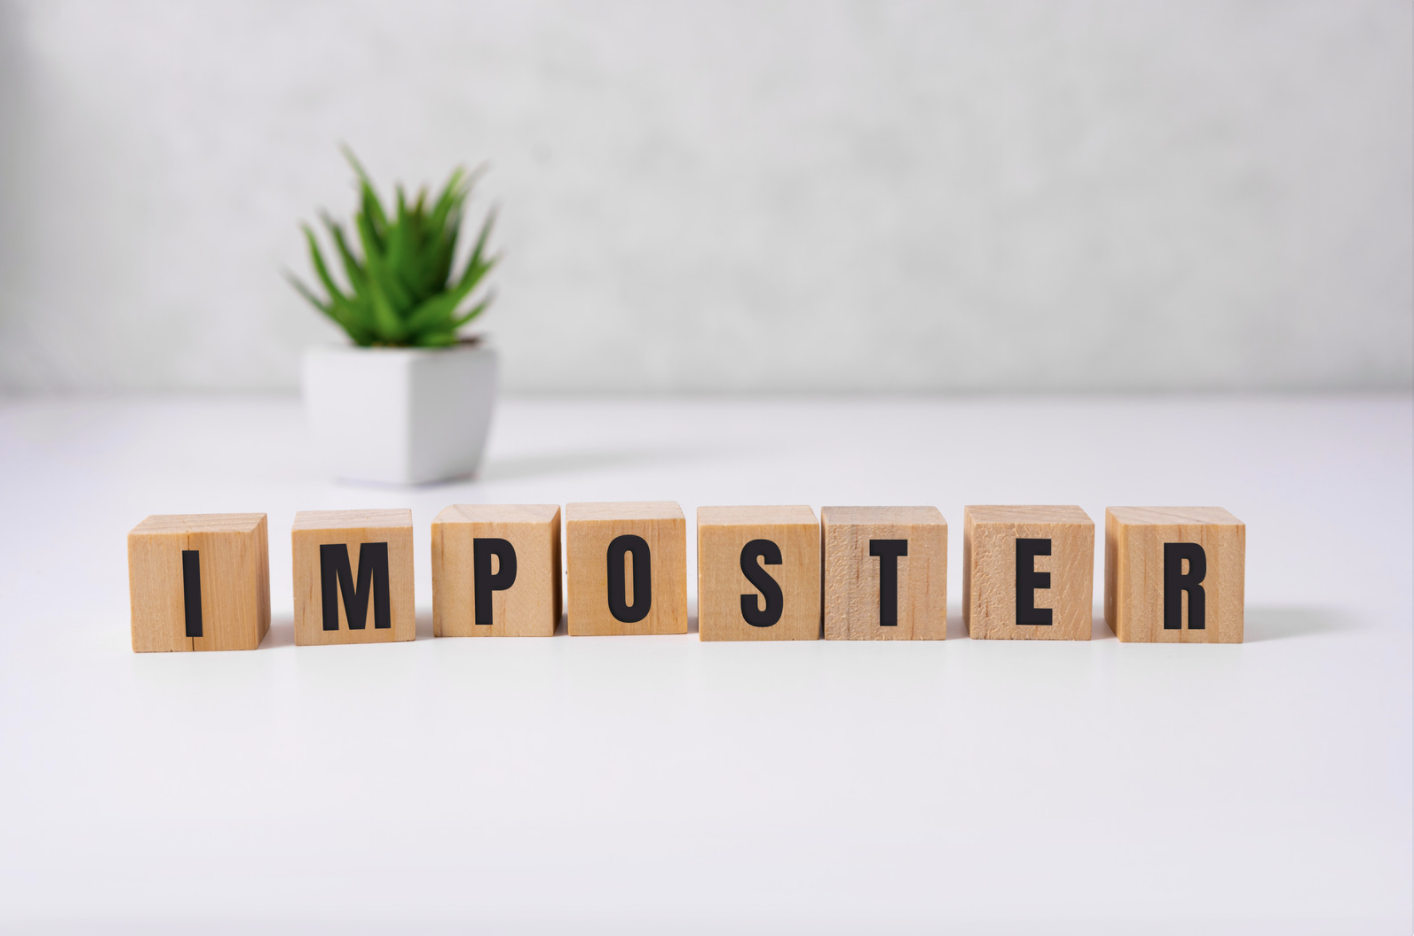 Imposter Syndrome Got You Down?